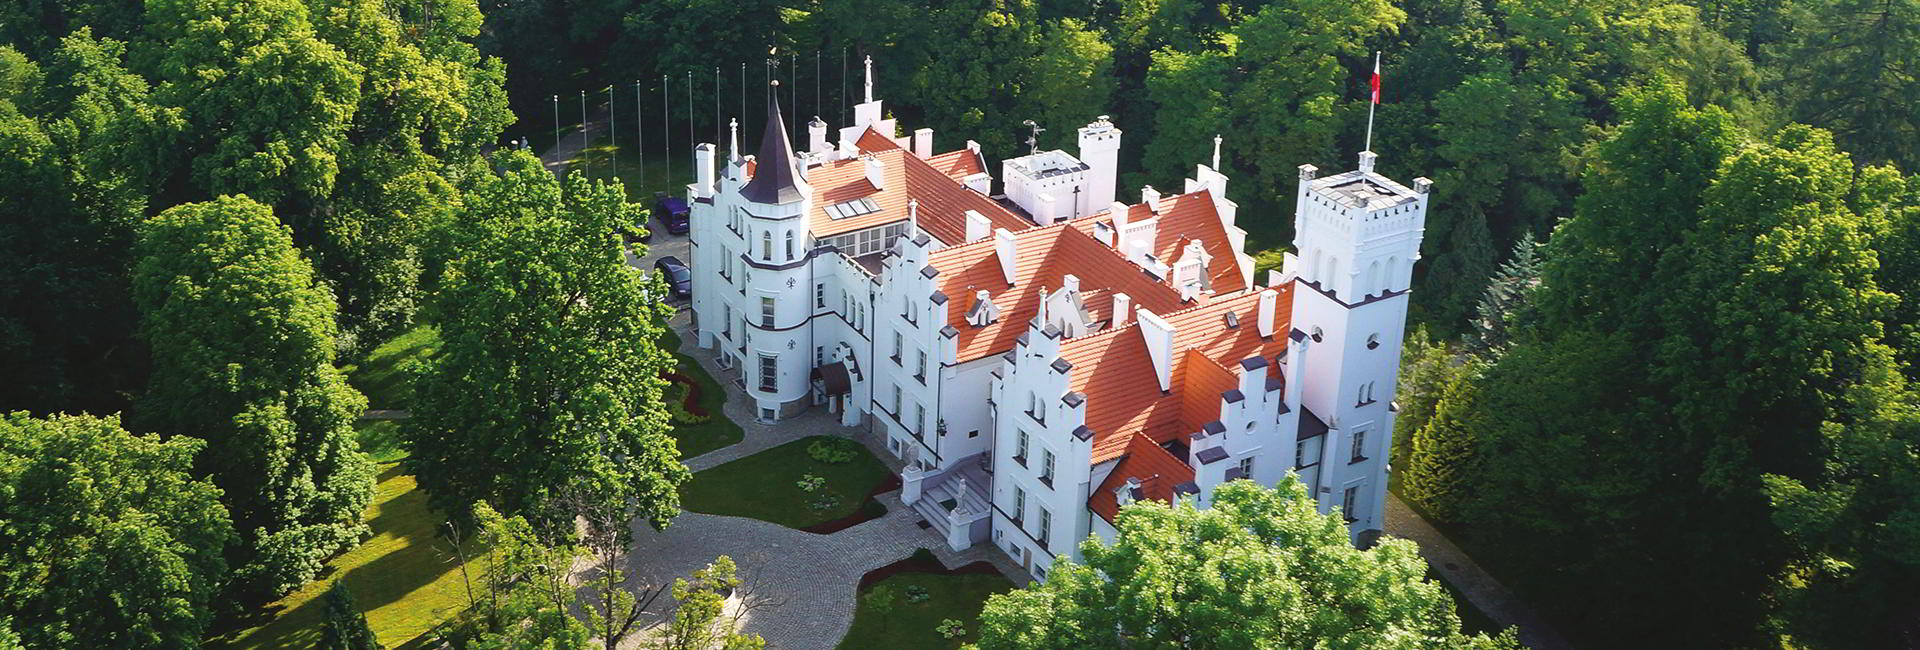 Sulislaw Palace in Grodkow near Wroclaw, Poland